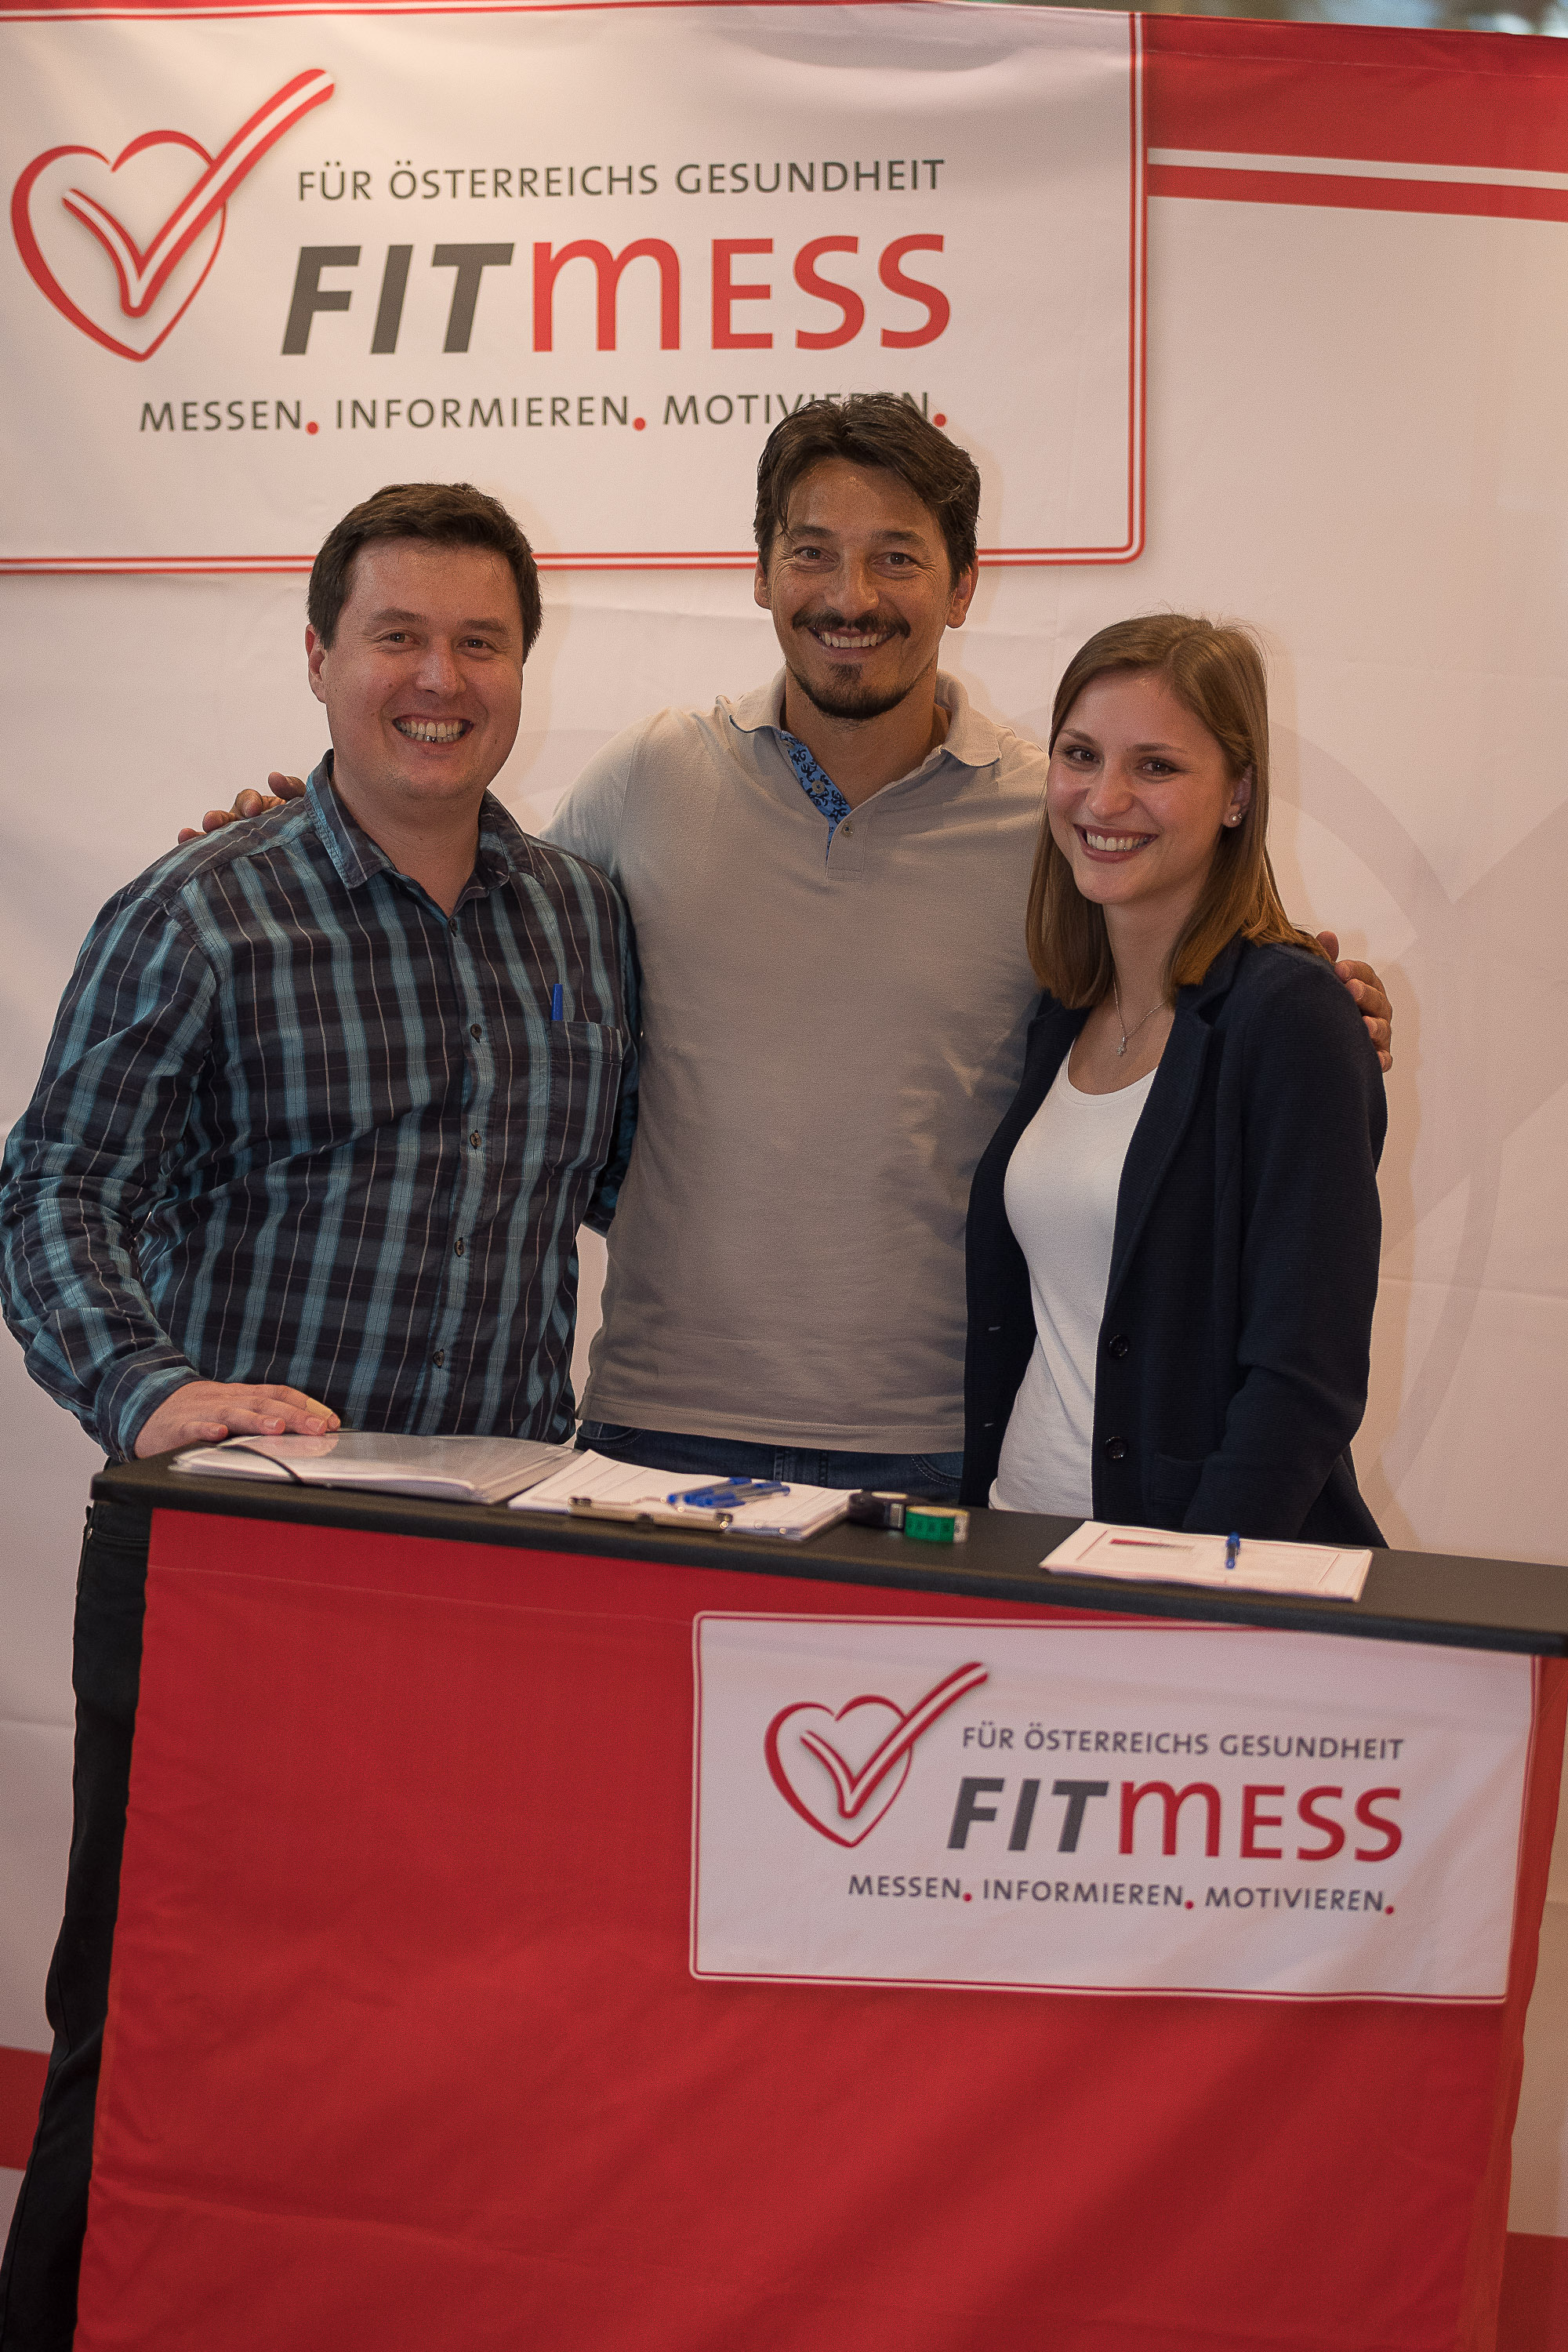 FITmess in Wels